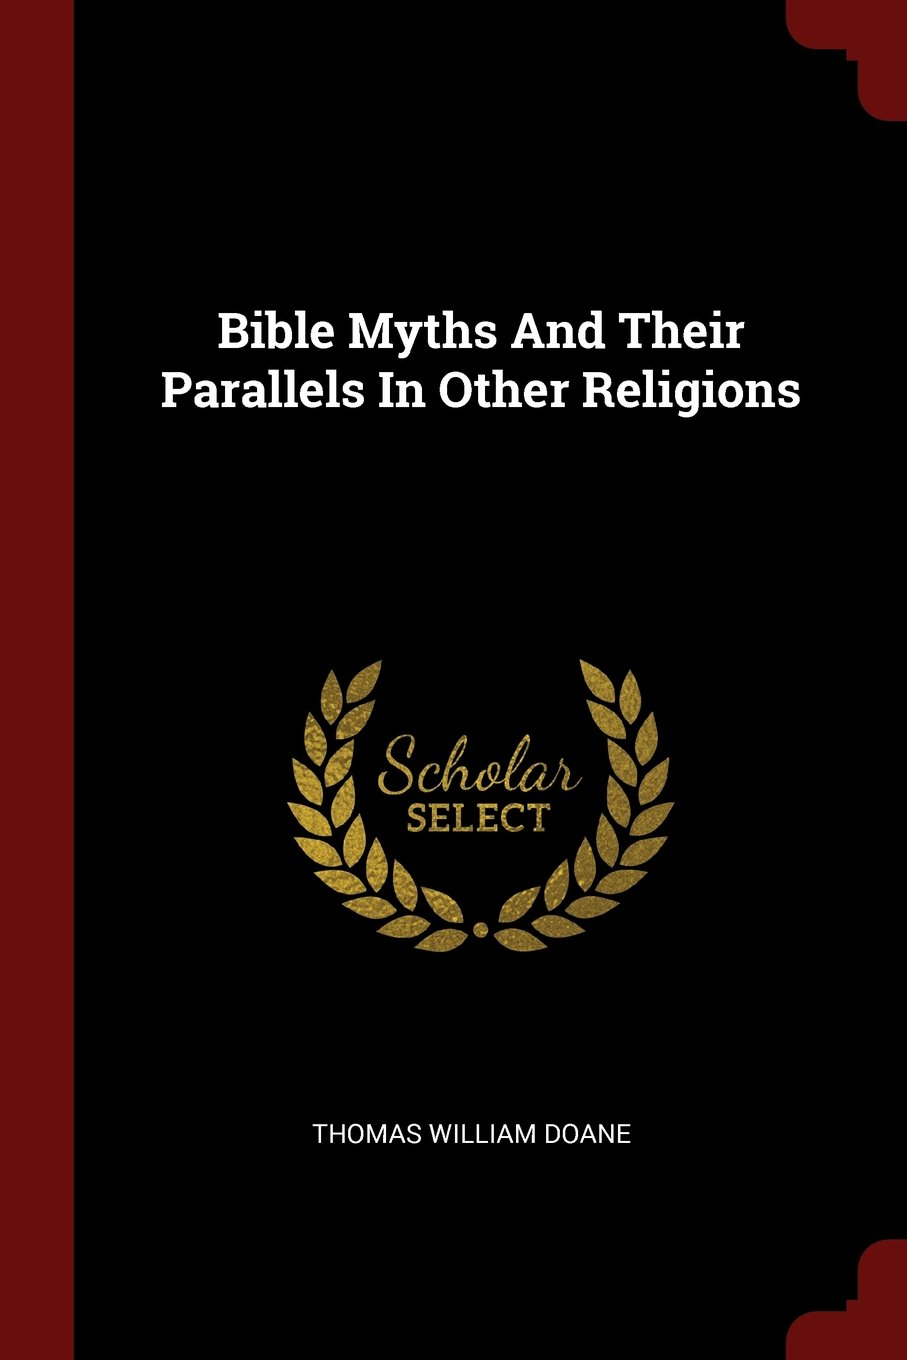 Bible Myths And Their Parallels In Other Religions: Thomas William Doane:  9781376310092: Amazon.com: Books